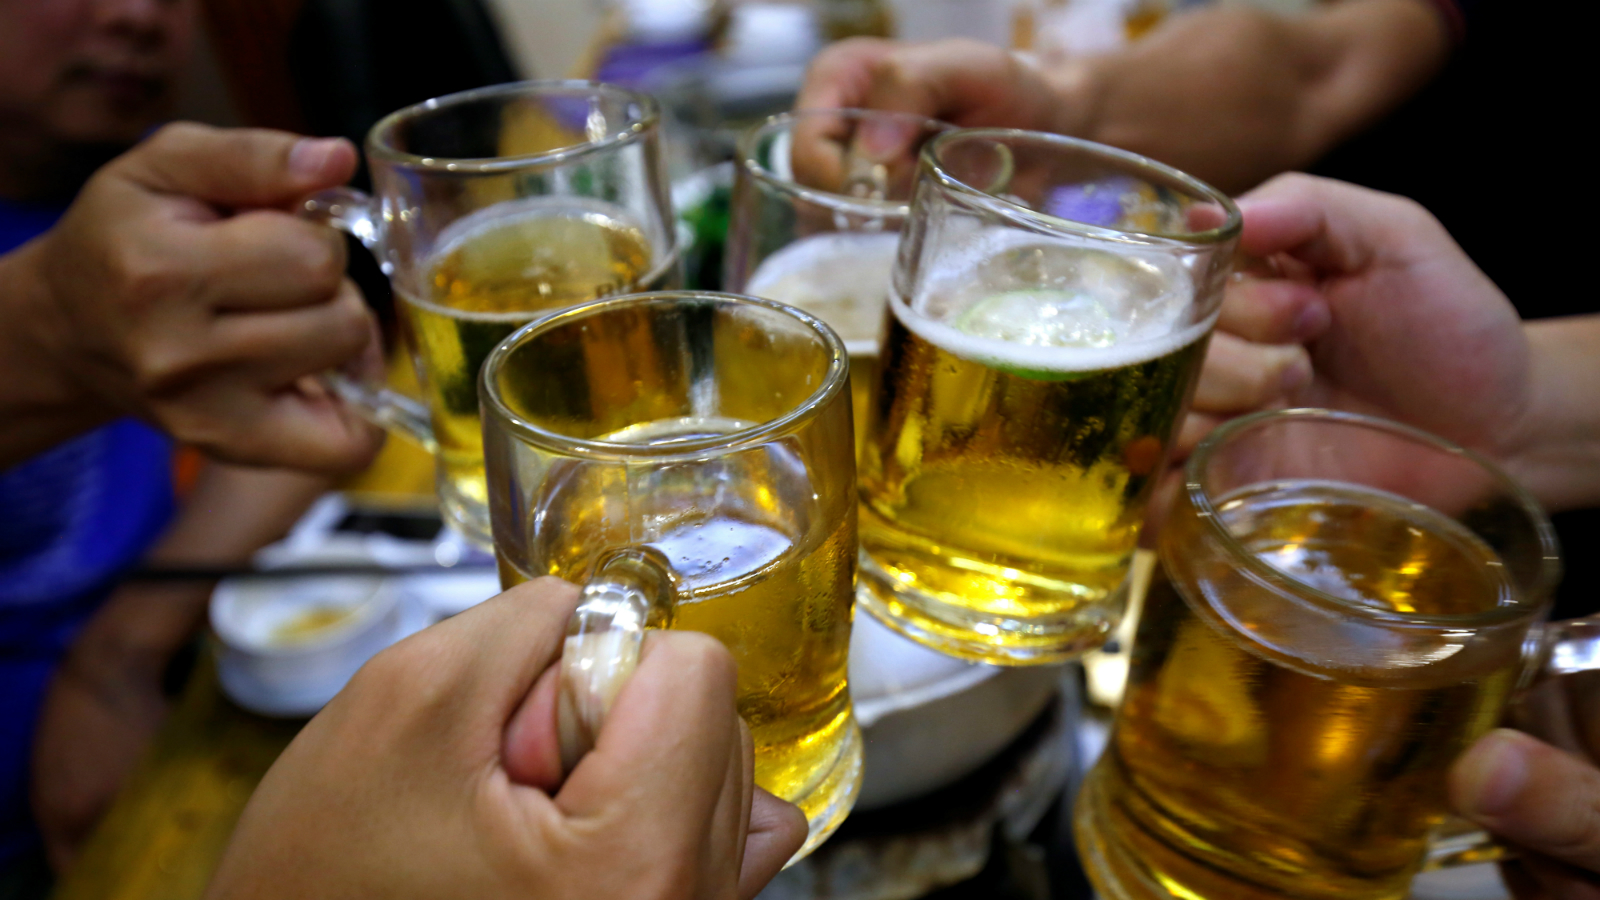 The UK government is considering a ban on early-morning airport drinking.